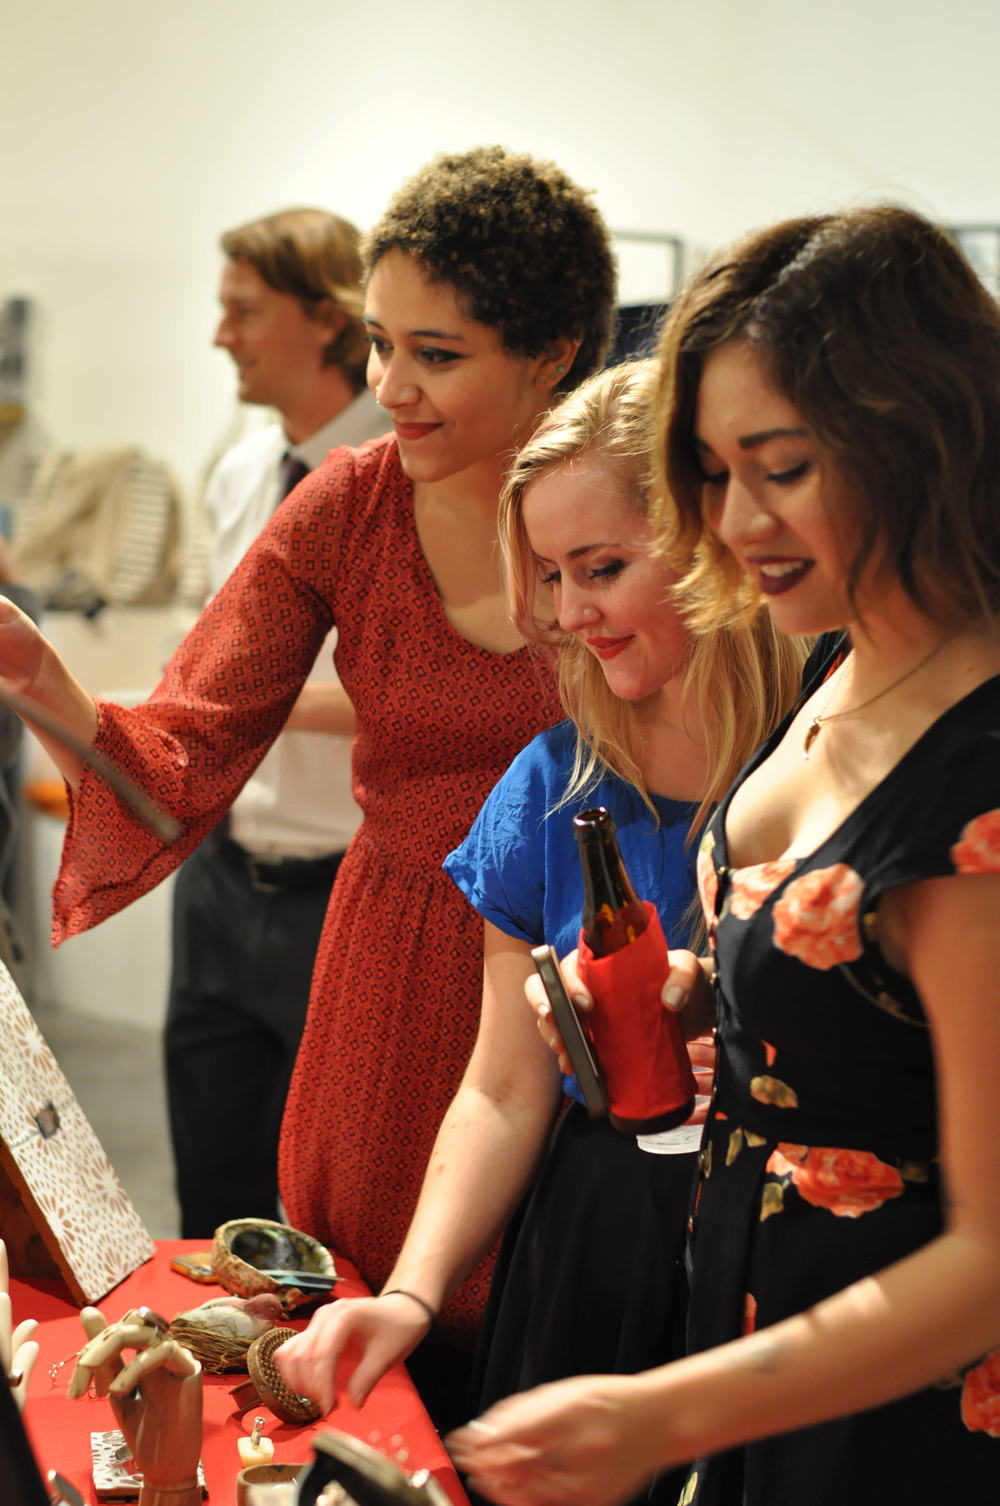 lovely ladies admiring the goods!